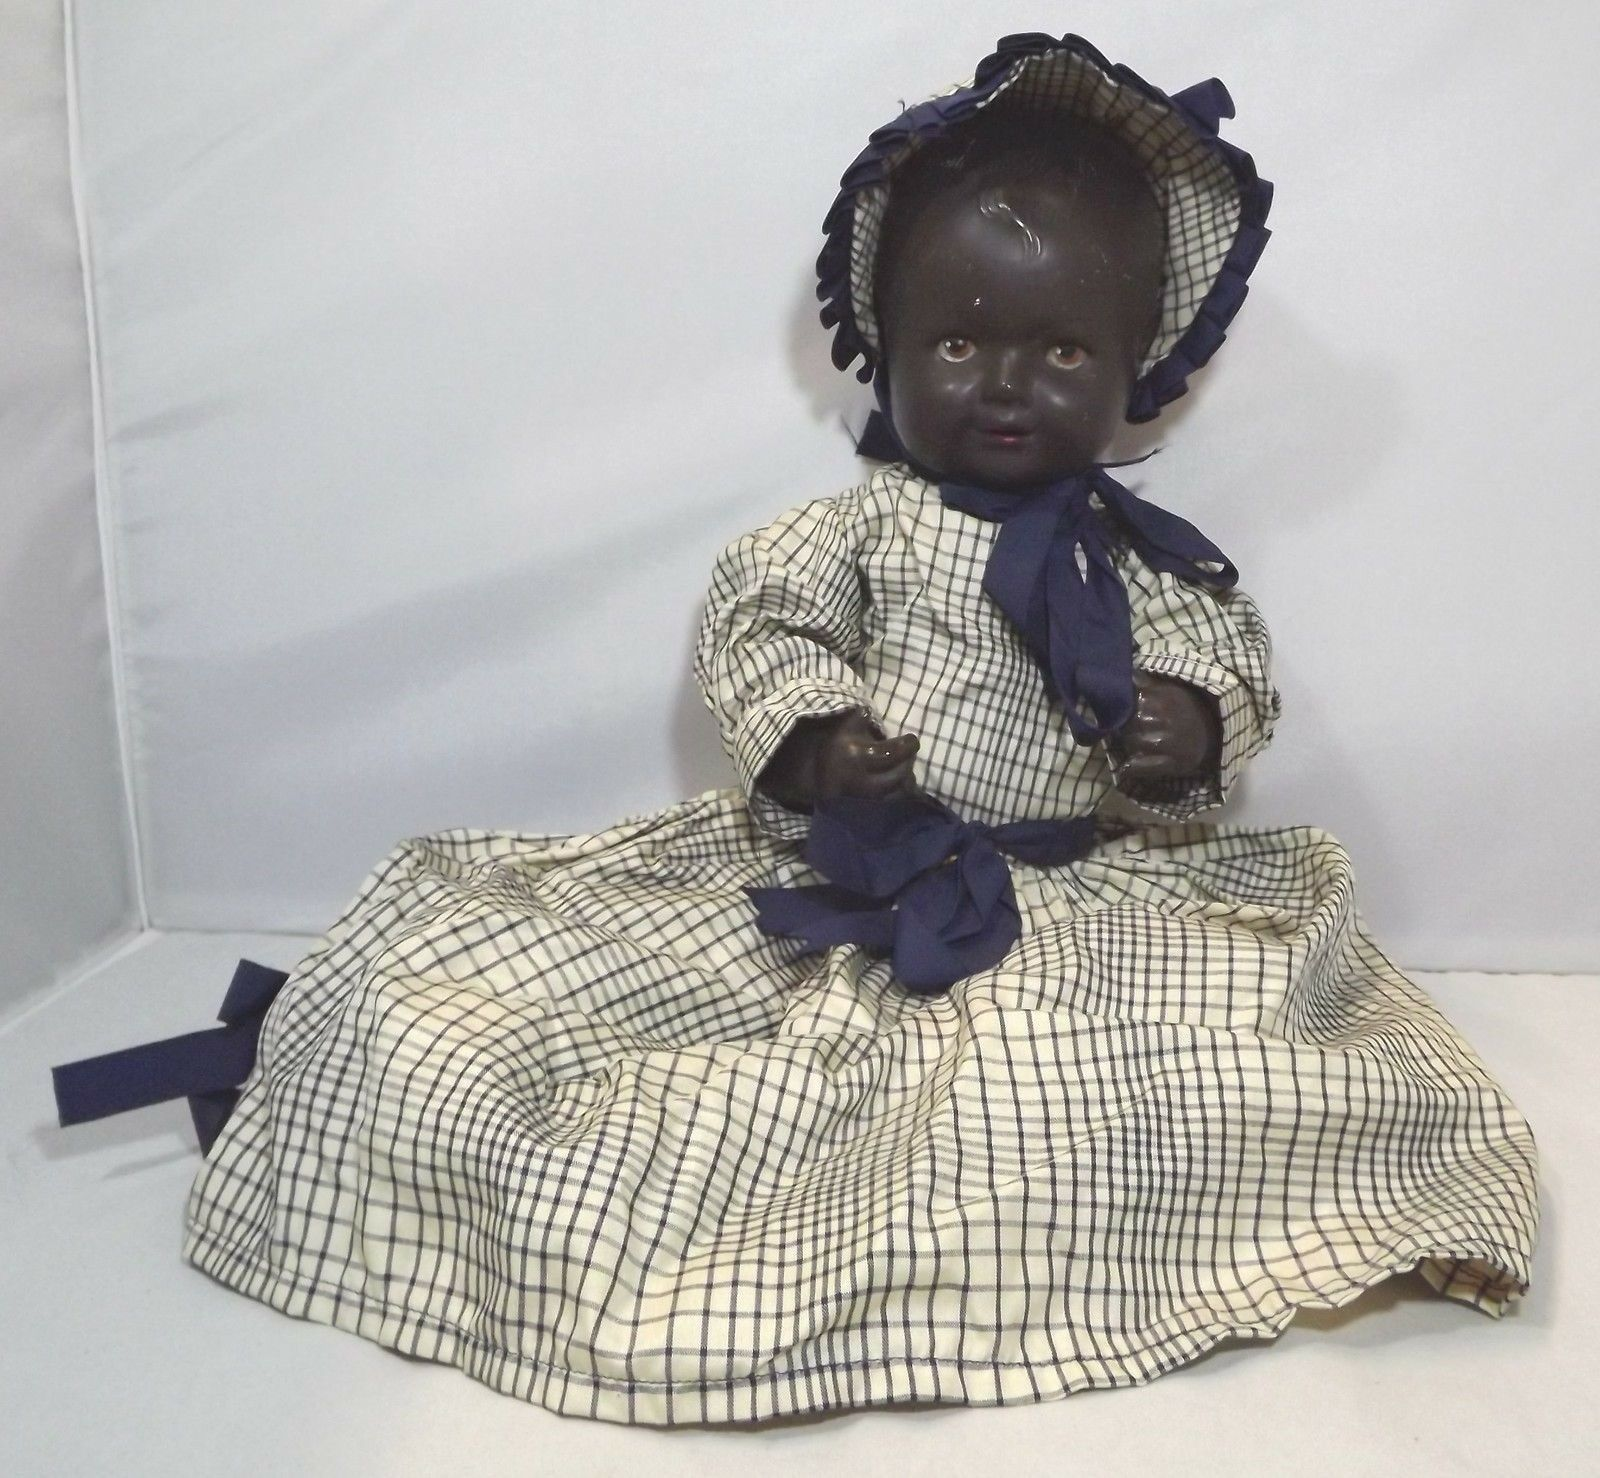 Vintage 1930s 40s 36cm schwarz Composition Bent-Limb Baby Doll Marked 'PB 3.35'